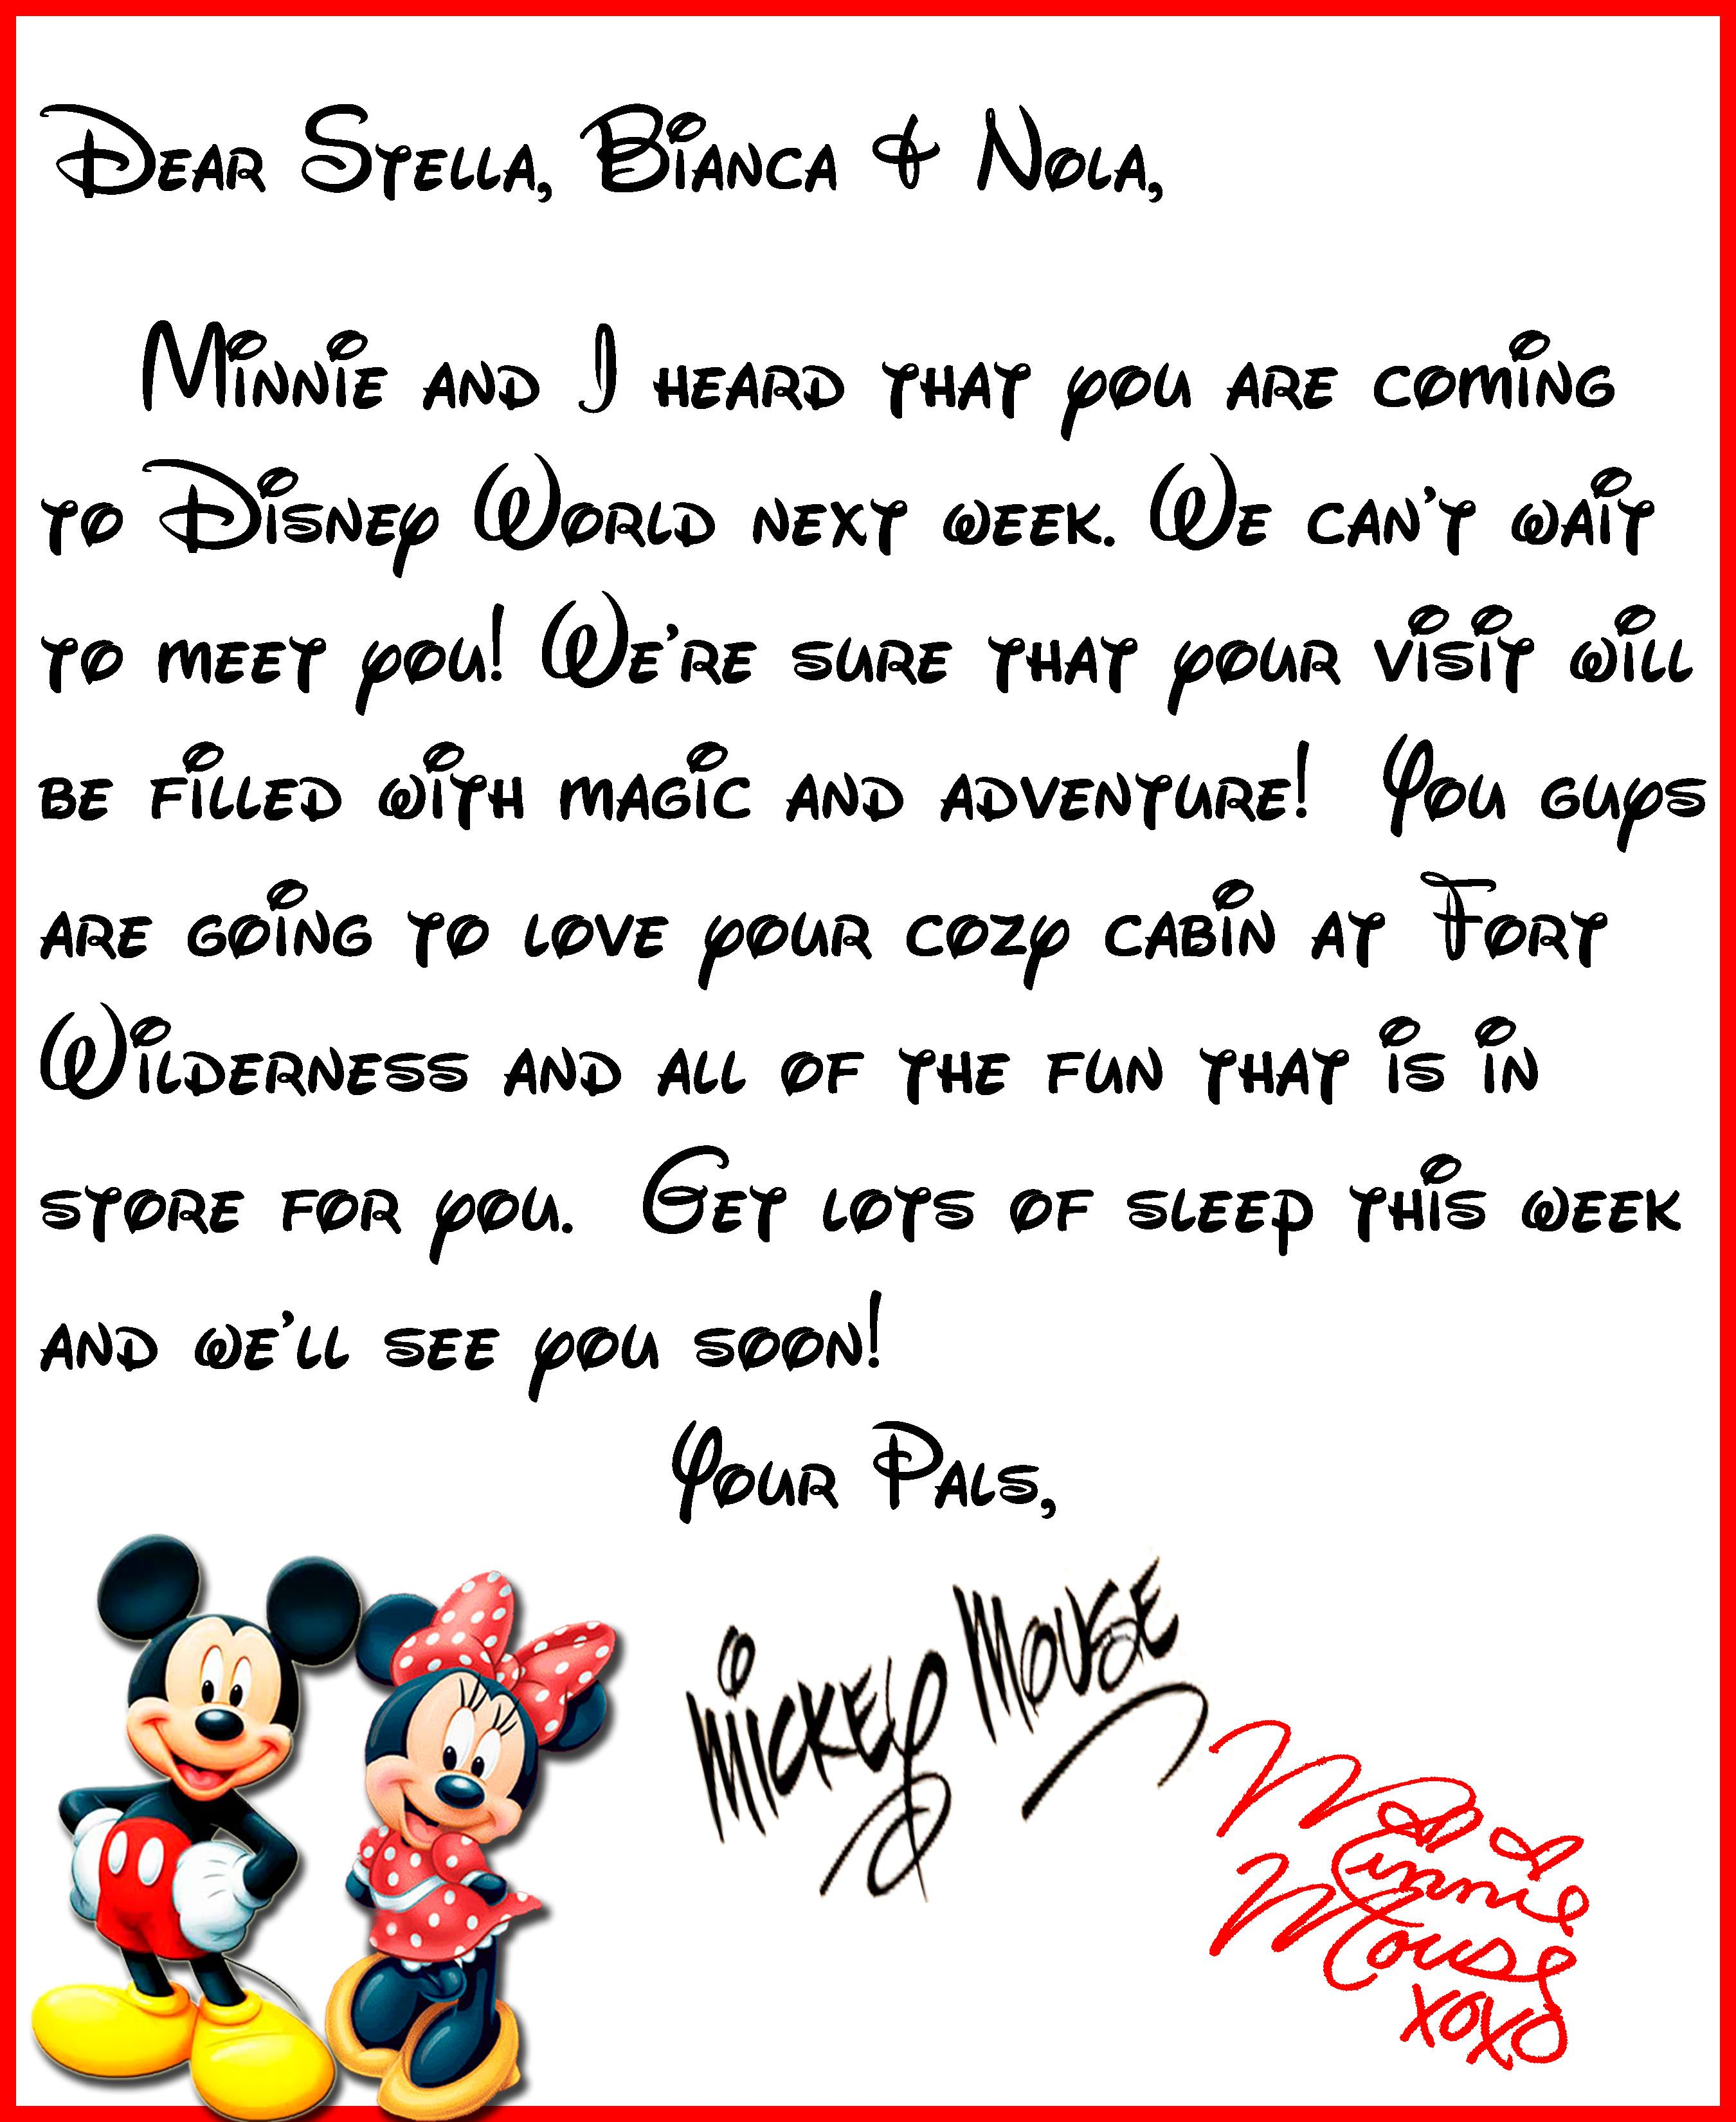 We Heard You Re Coming To Disney World A Letter From